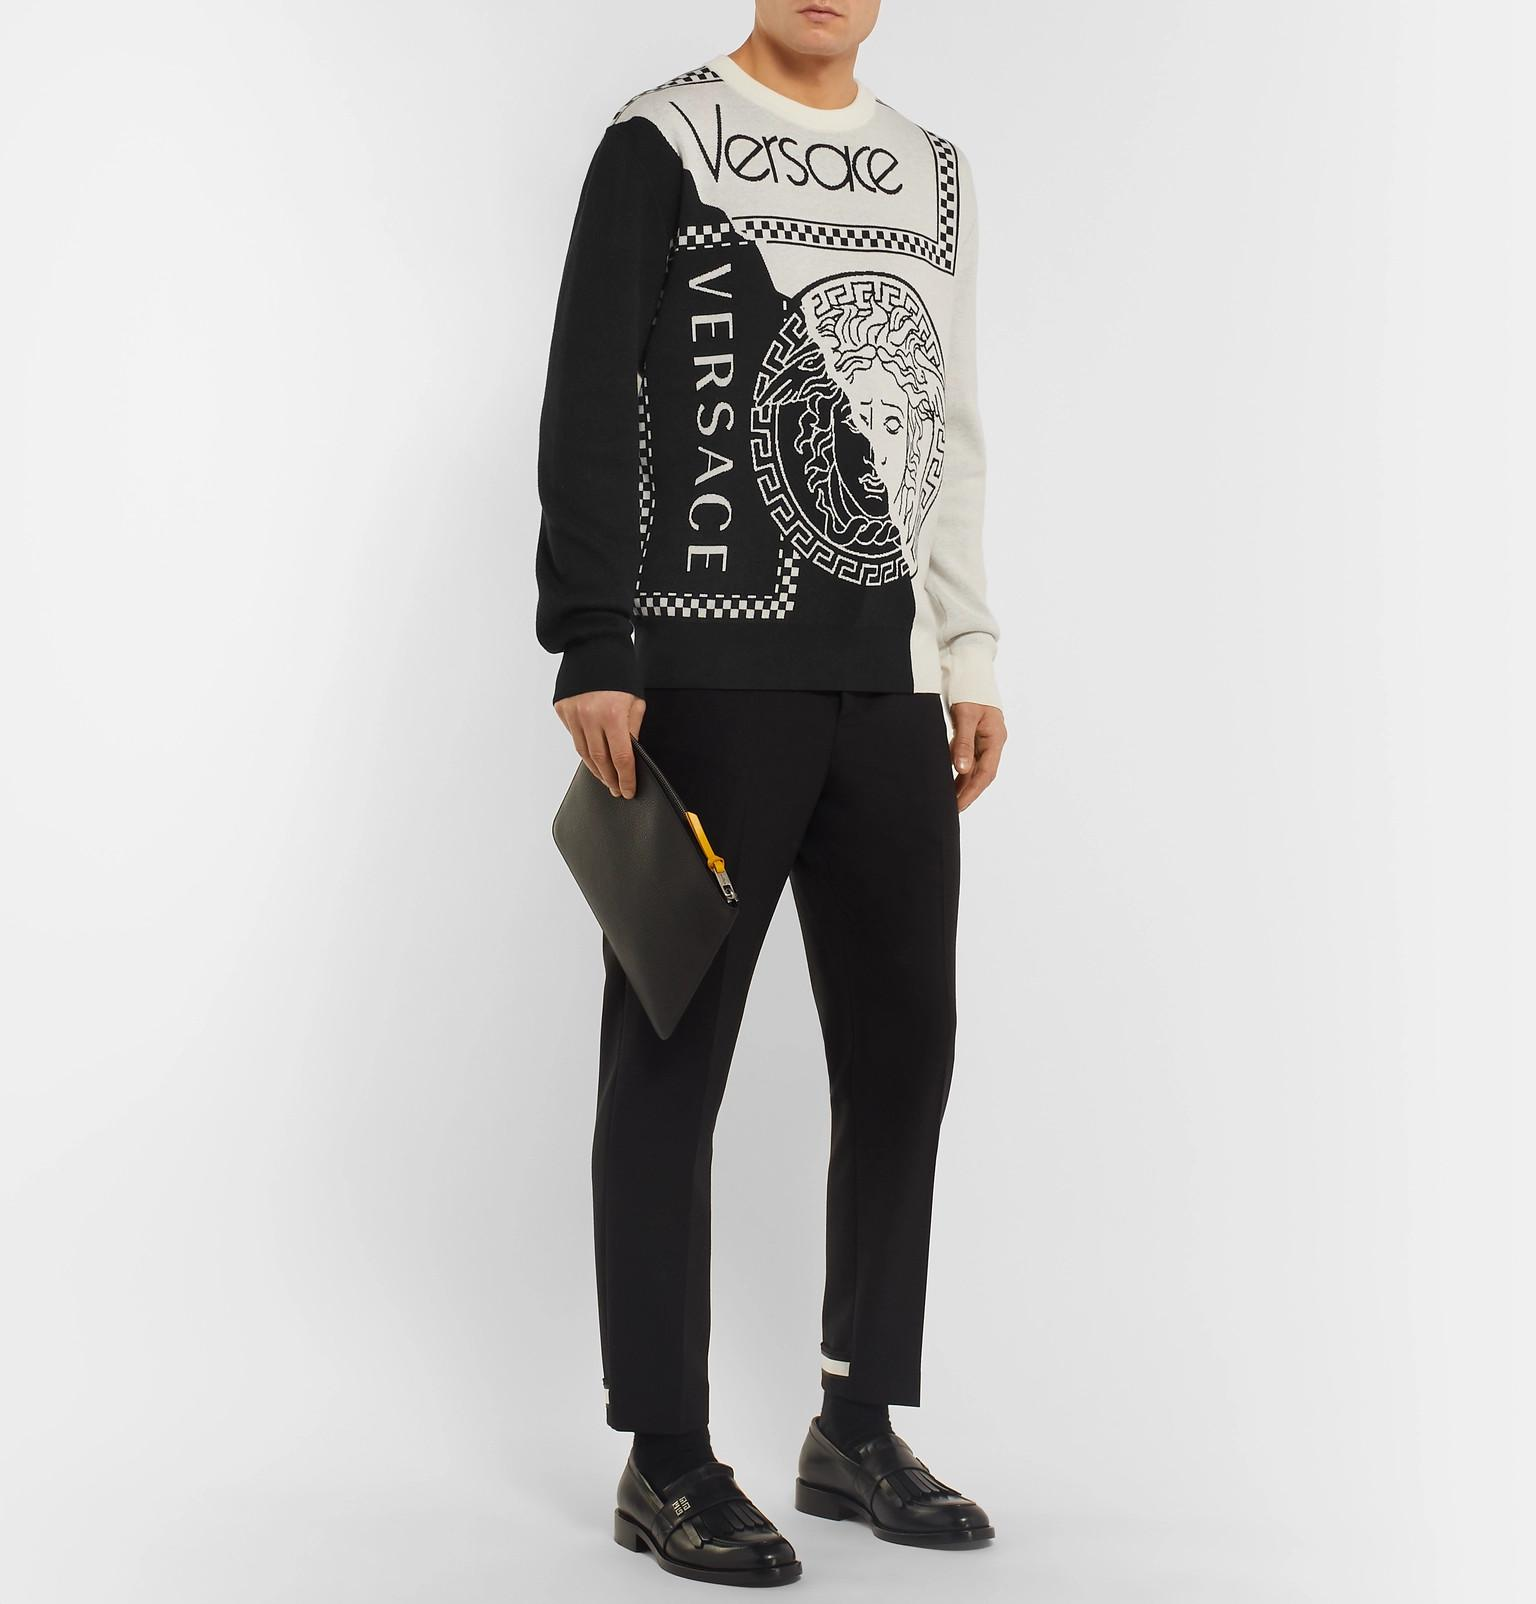 Sweater Men Blend Wool Intarsia White Logo Fullscreen Versace And View  Cotton Lyst For W6wfS0c1q a16b98a7704